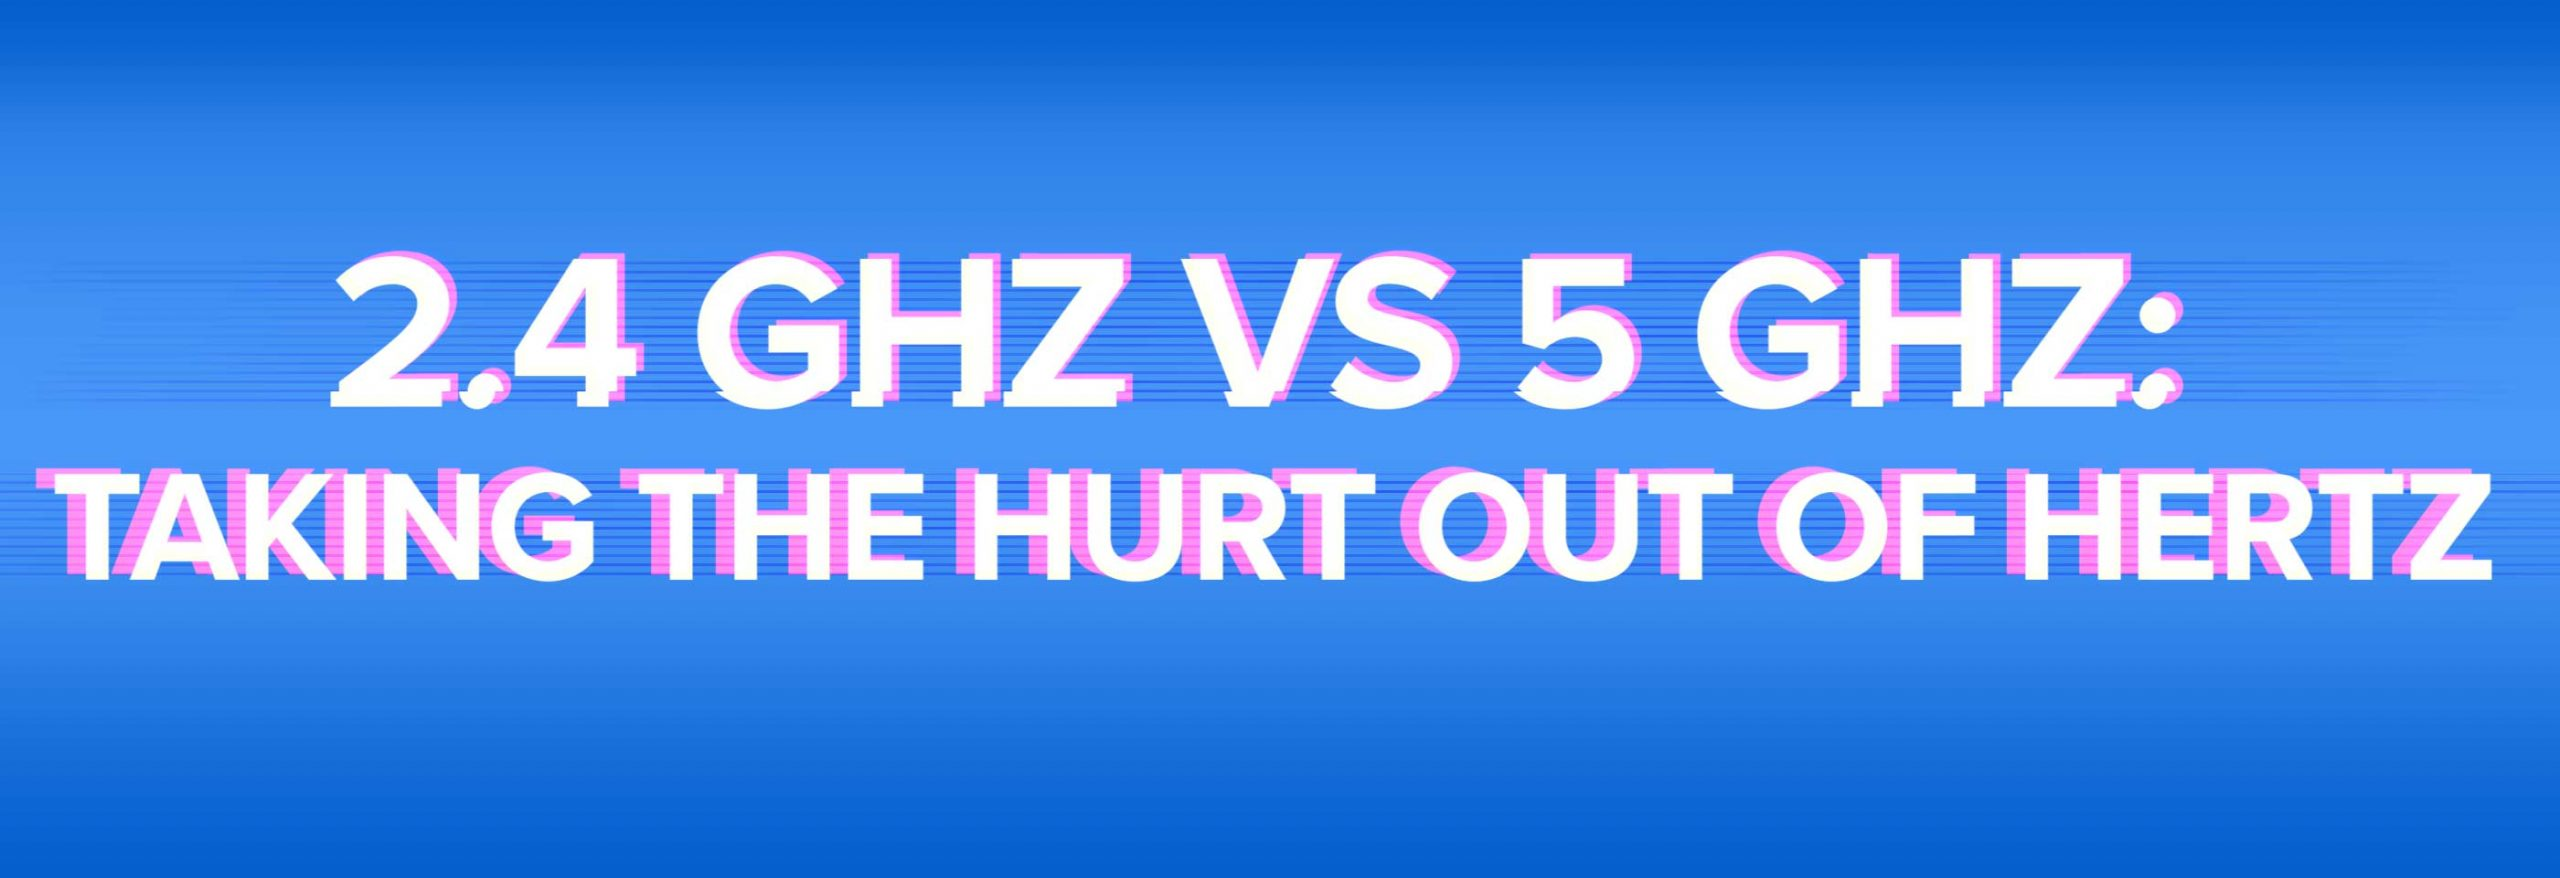 2.4 GHz vs 5 GHz: Taking he hurt out of hertz